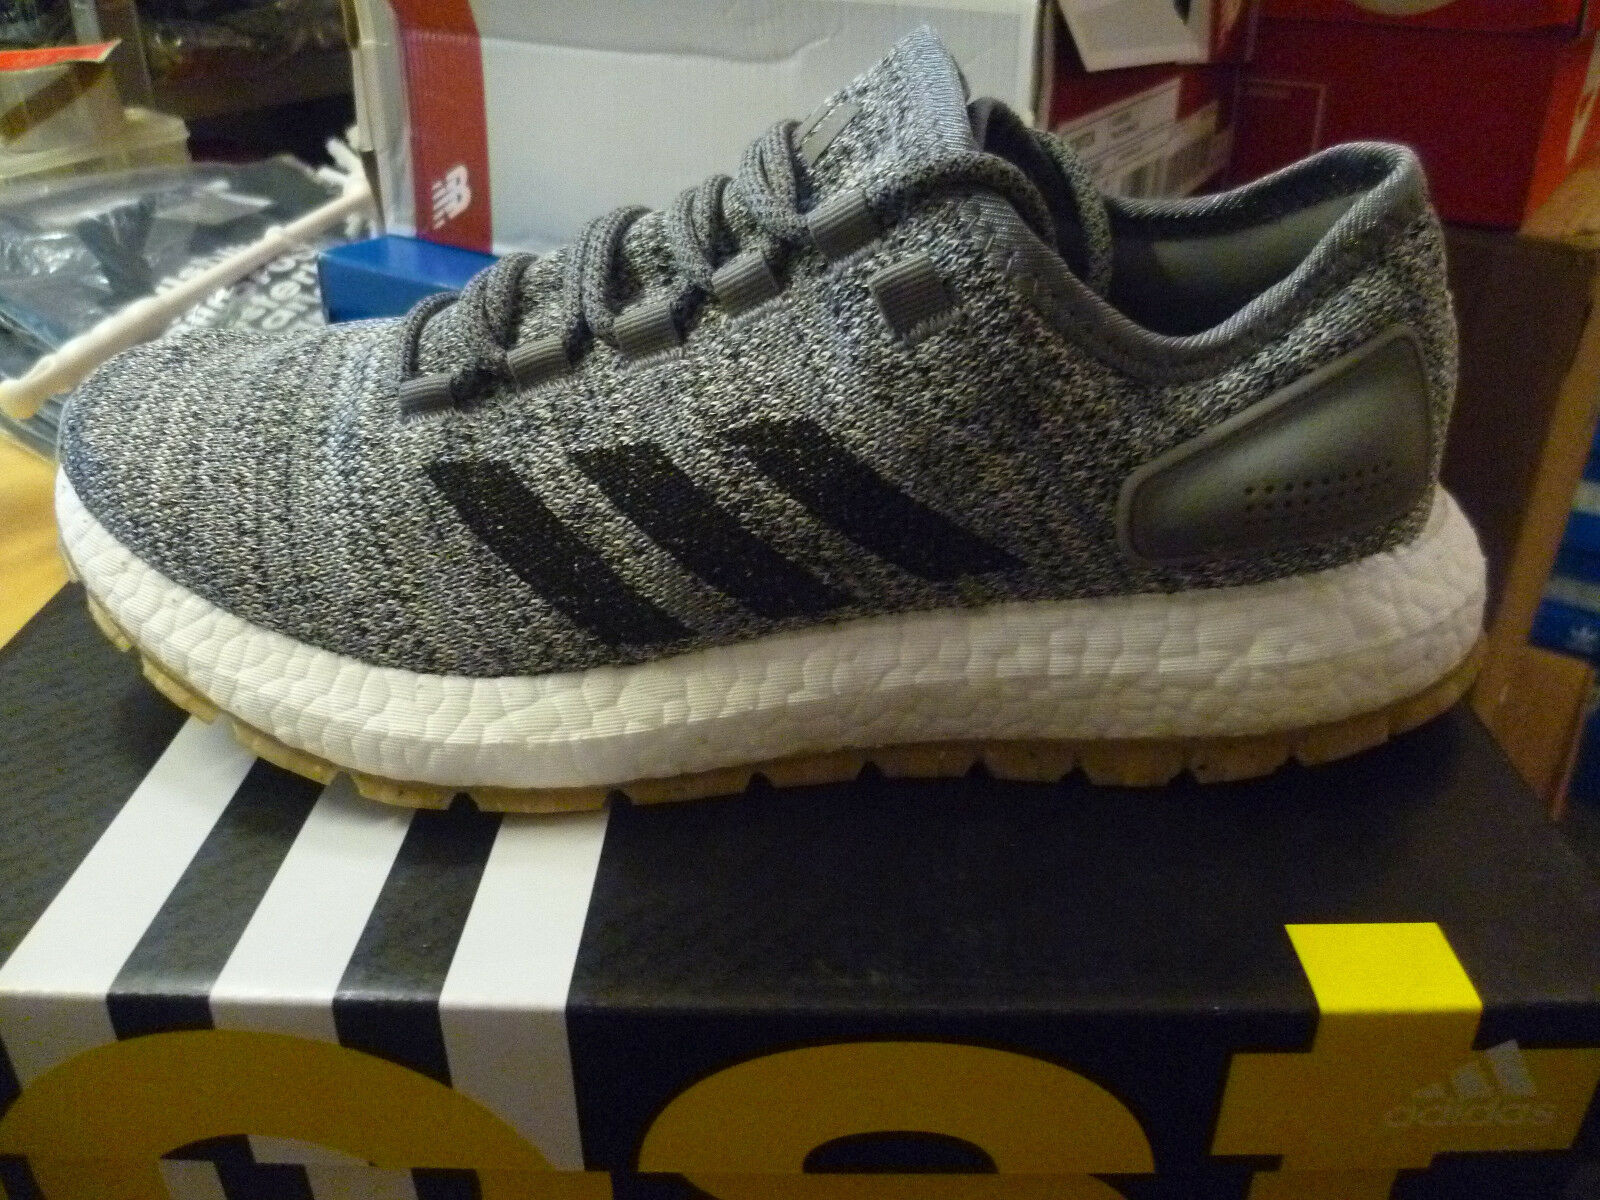 Adidas Pure Boost All Terrain - S 80783 - US 11,5   EUR 46  - NMD, Ultra Boost